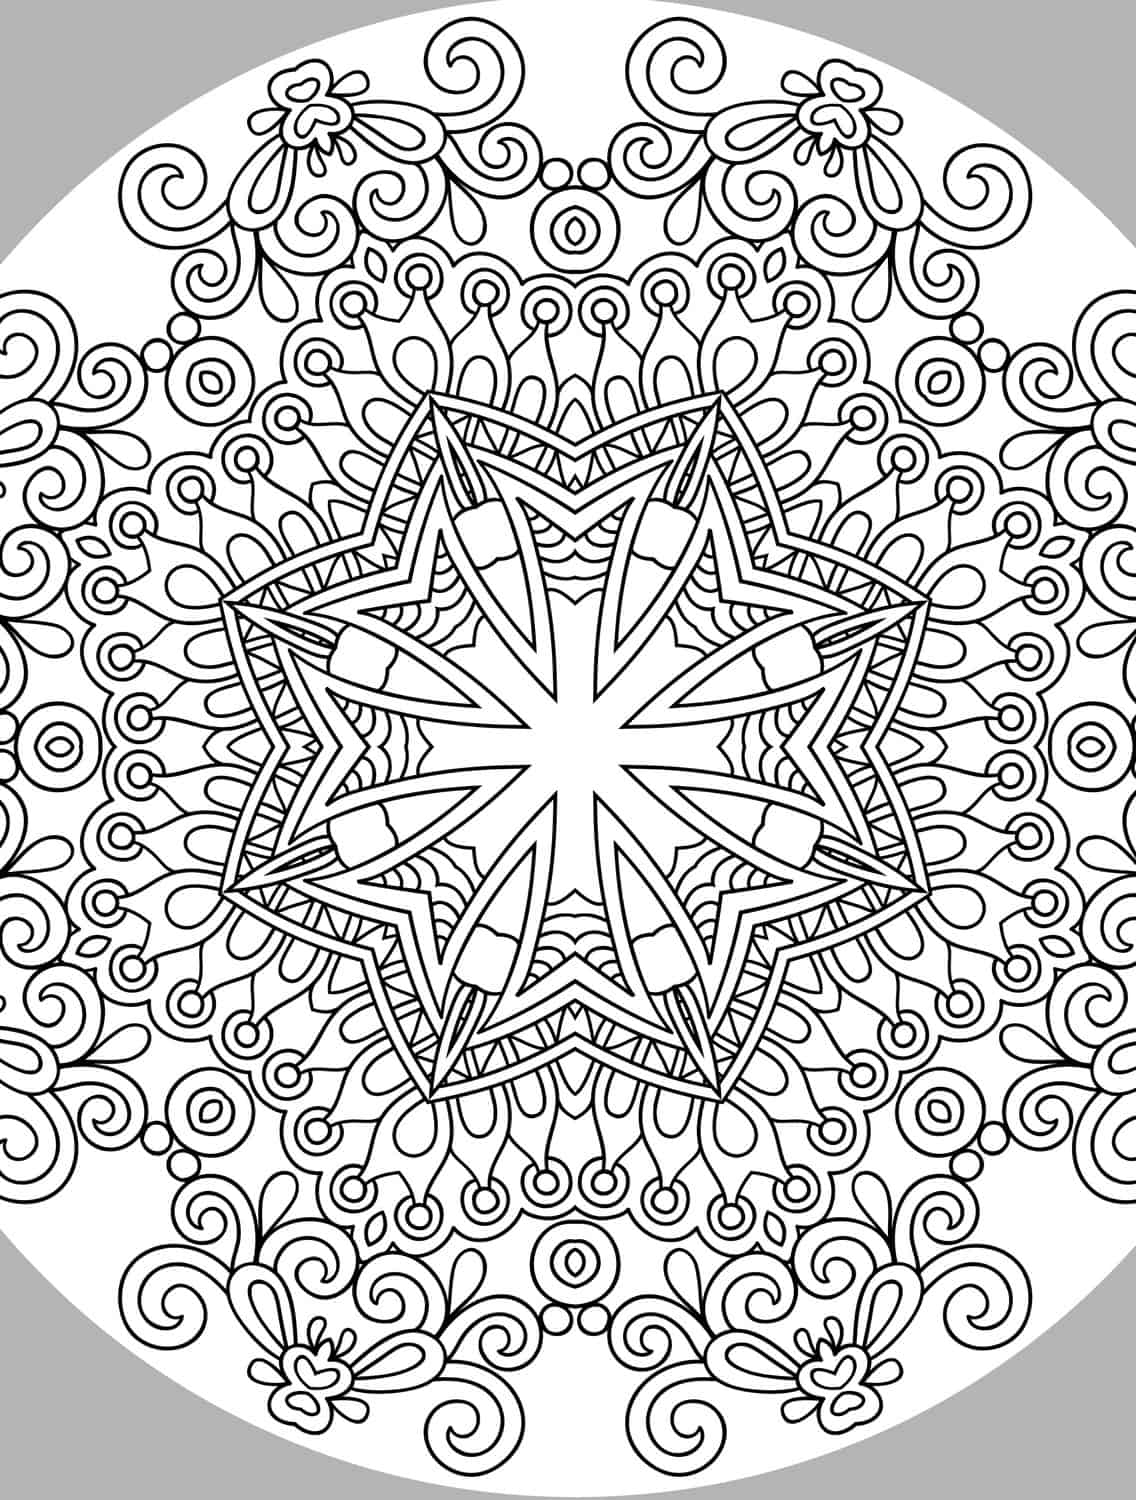 It's just a picture of Free Printable Christmas Coloring Pages for Adults pertaining to seasonal